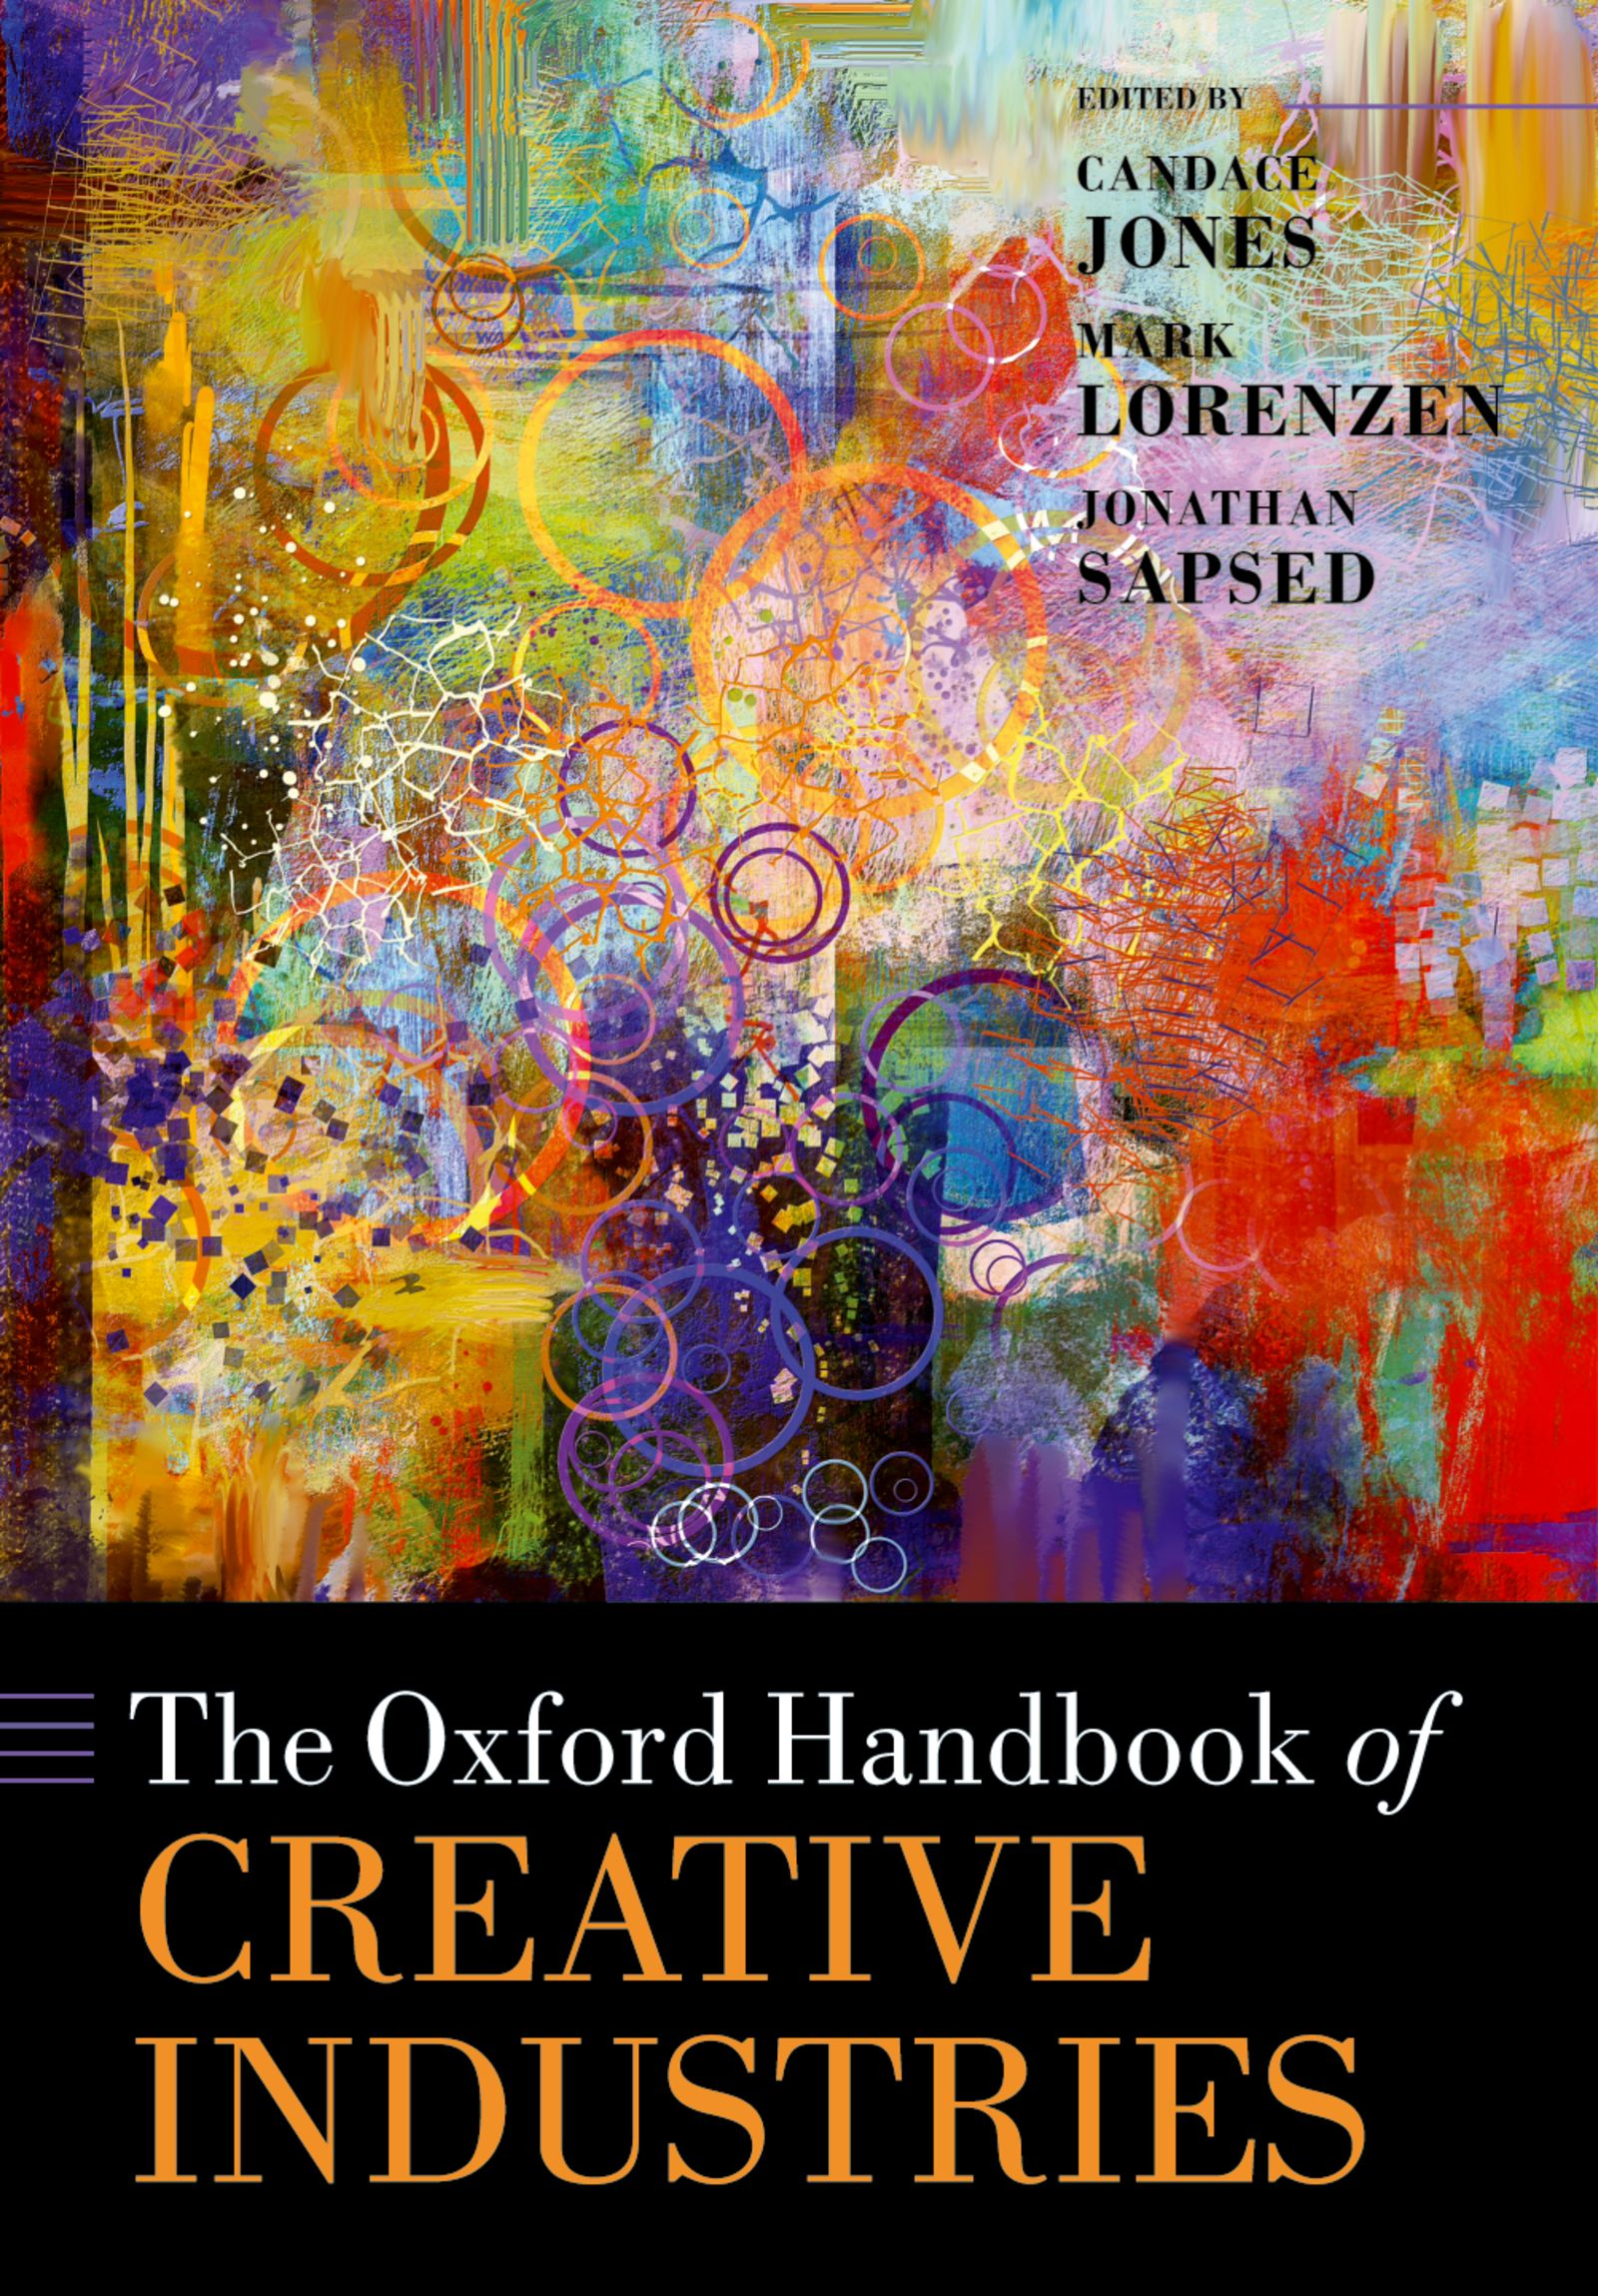 Download Ebook The Oxford Handbook of Creative Industries by Candace Jones Pdf